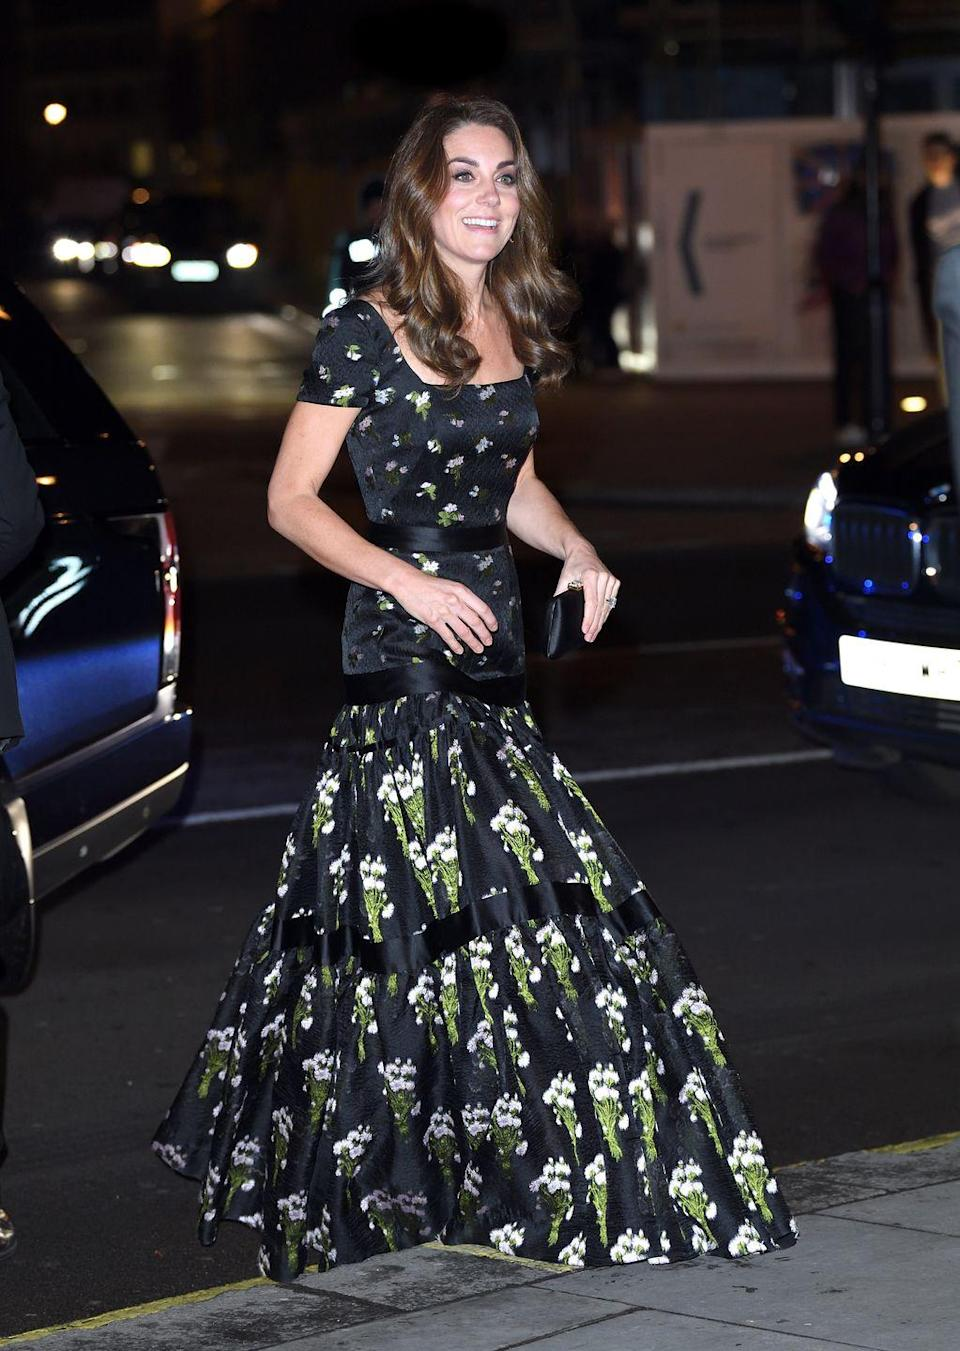 "<p>Kate Middleton attended the <a href=""https://www.townandcountrymag.com/style/fashion-trends/a26789213/kate-middleton-alexander-mcqueen-national-portrait-gallery-gala-2019/"" rel=""nofollow noopener"" target=""_blank"" data-ylk=""slk:National Portrait Gallery Gala"" class=""link rapid-noclick-resp"">National Portrait Gallery Gala</a> wearing a re-tailored Alexander McQueen dress, that she previously wore in 2017, <a href=""https://www.neimanmarcus.com/c/designers-kiki-mcdonough-cat46520802"" rel=""nofollow noopener"" target=""_blank"" data-ylk=""slk:Kiki McDonough earrings"" class=""link rapid-noclick-resp"">Kiki McDonough earrings</a>, and a Prada clutch. </p>"